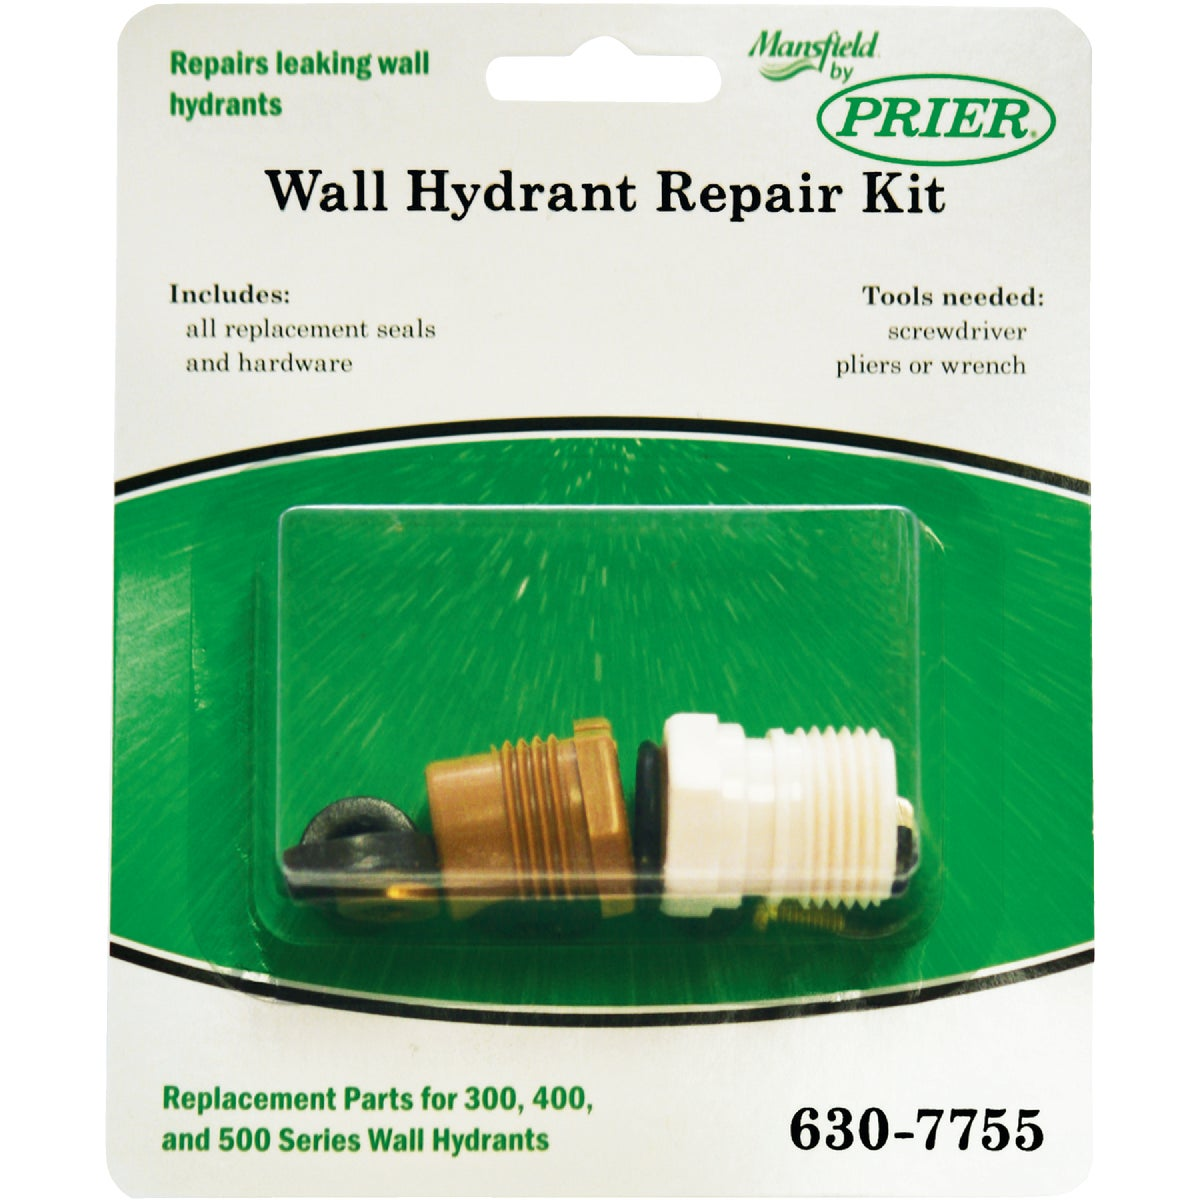 SERVICE PARTS KIT - 630-7755 by Prier Products